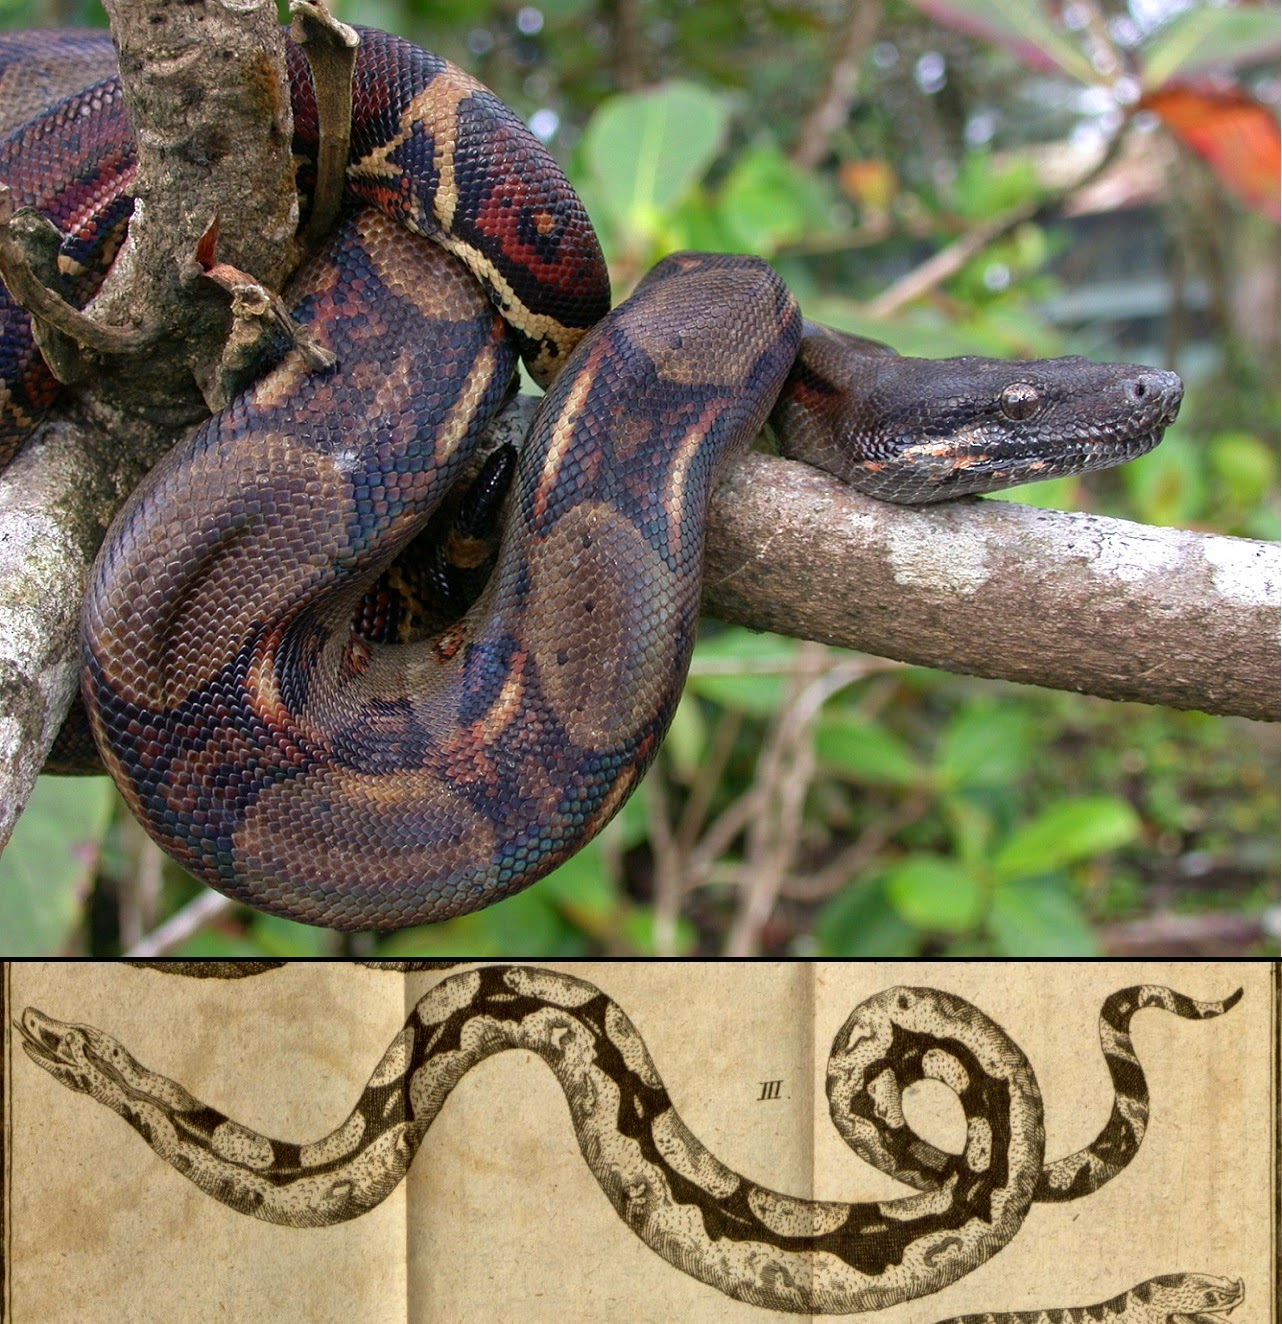 Life Is Short But Snakes Are Long June 2015